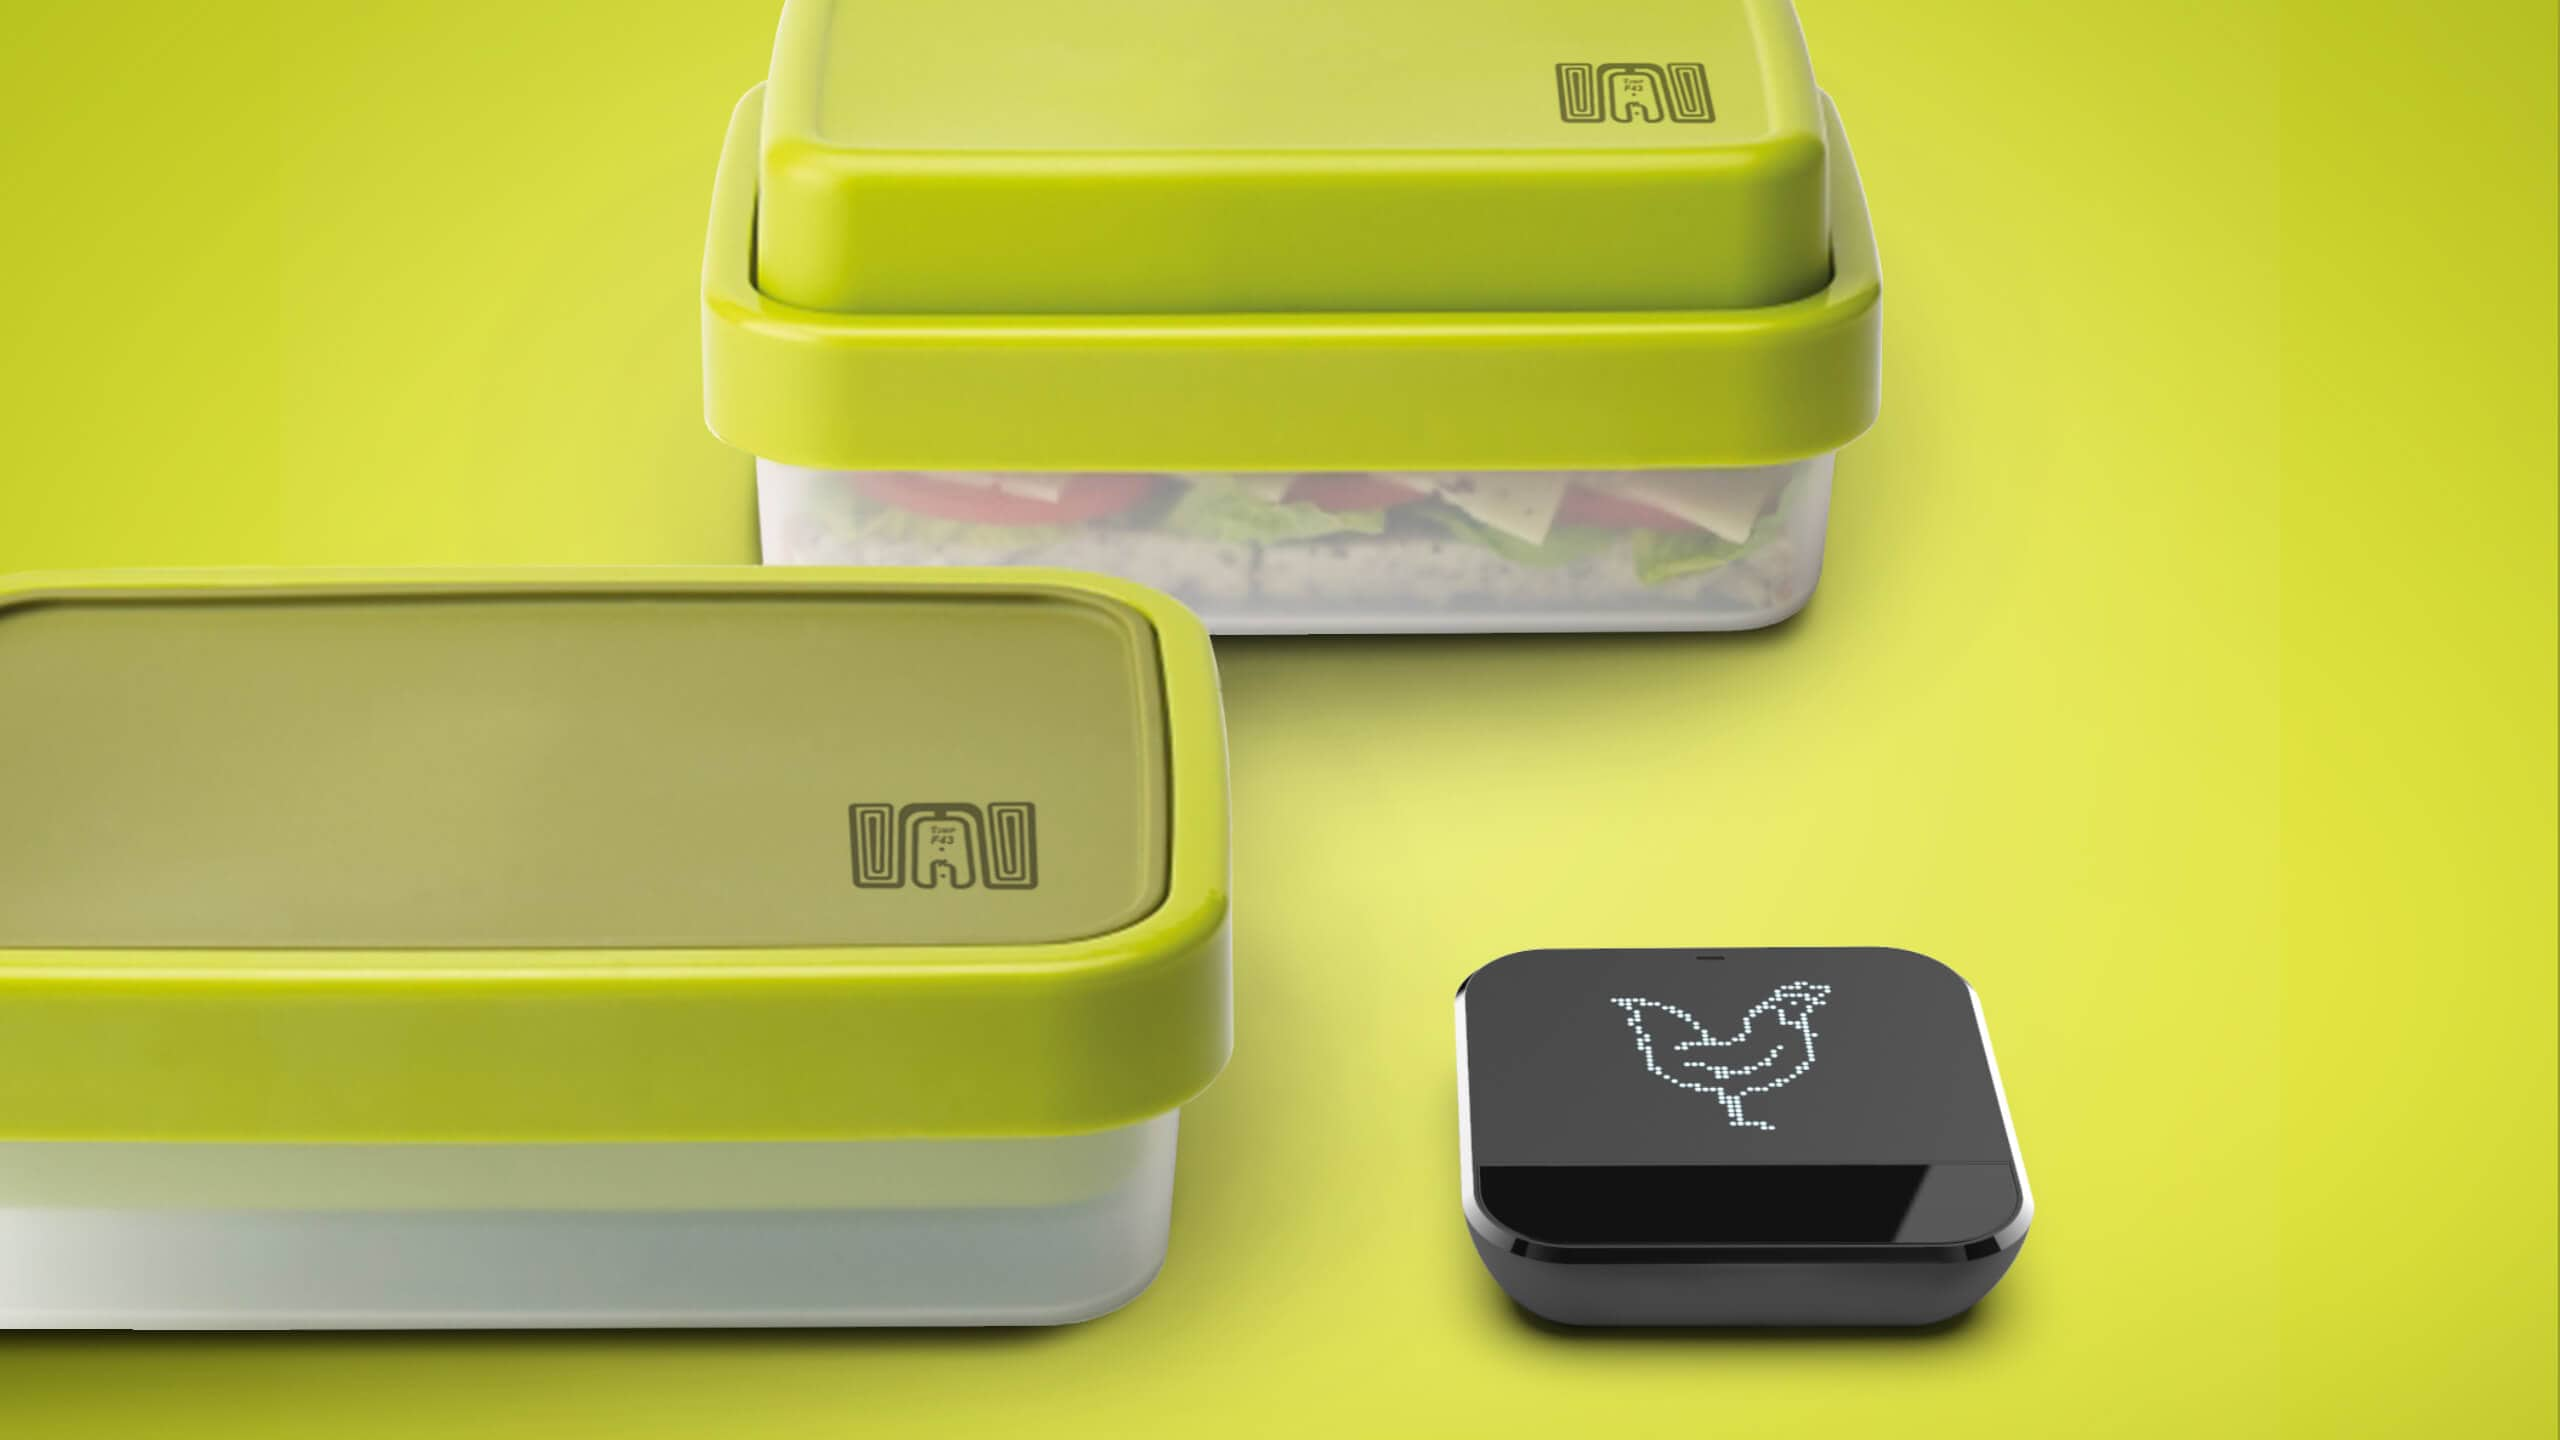 Sprout studios, Boston, industrial design, product design, rendering, CAD, Smartware, Tupperware, food, container, food prep, fridge, storage, IOS, app, IOT